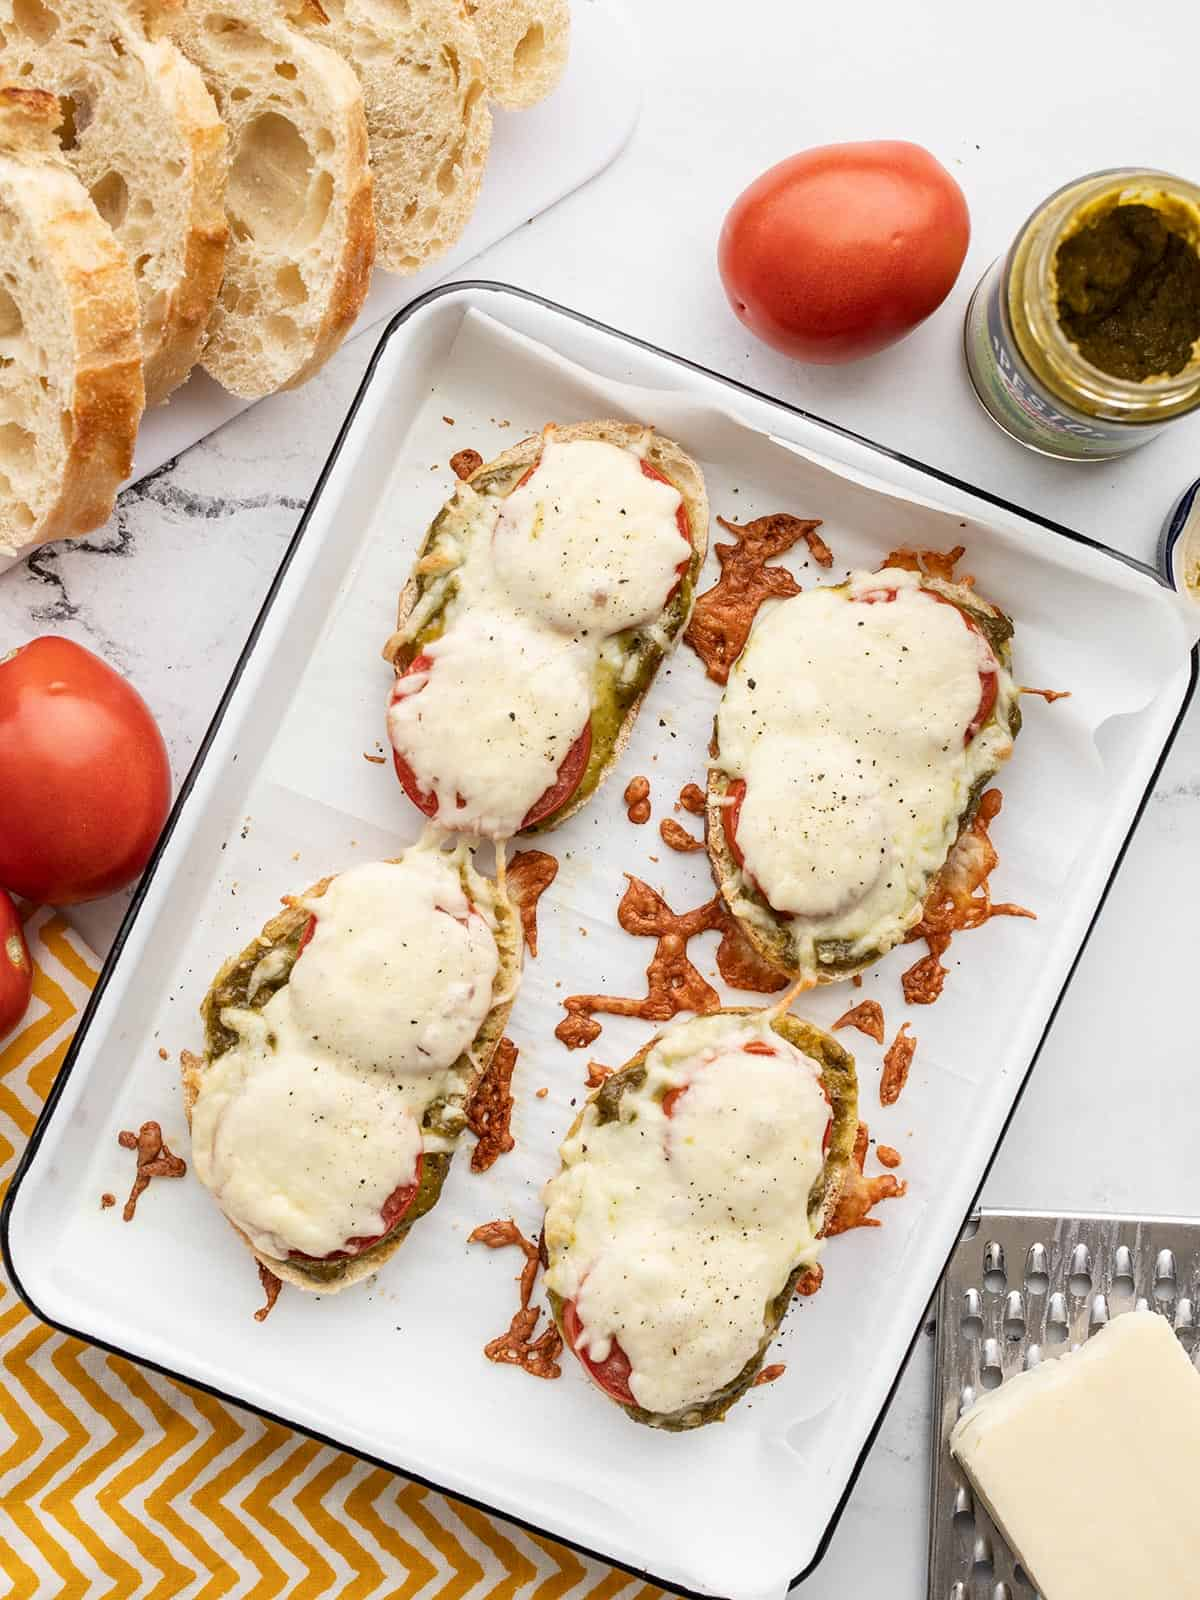 Pesto cheese toast on a baking sheet with bread, tomatoes and cheese on the sides